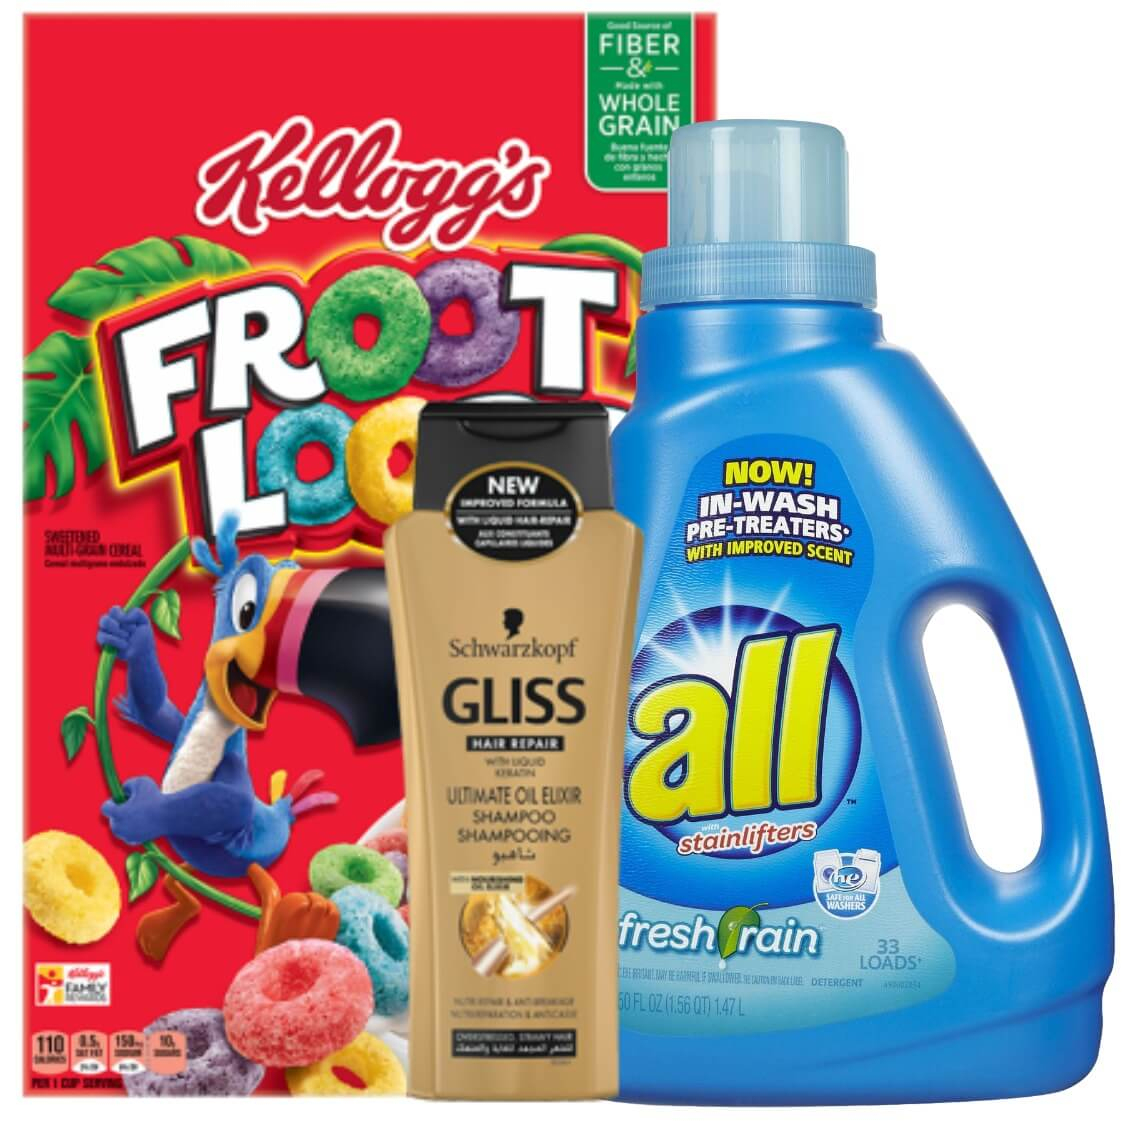 Today's Top New Coupons - Save On Kellogg's, All Laundry Detergent - Free All Detergent Printable Coupons